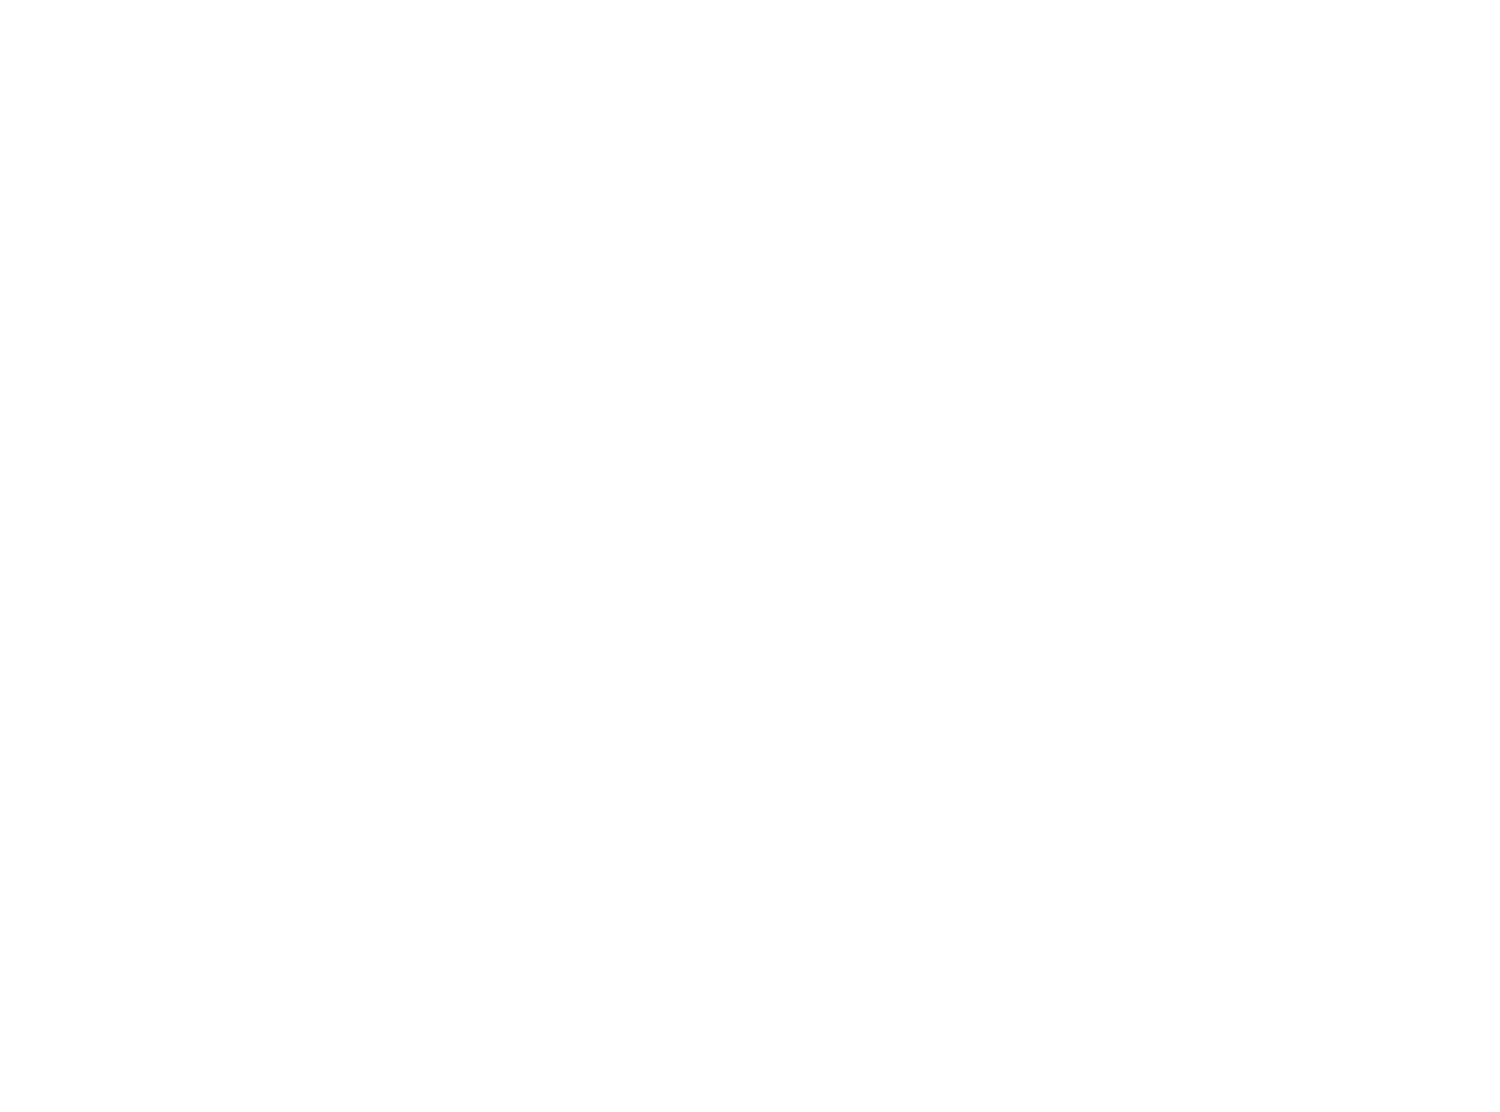 HIGHLANDS PROJECT